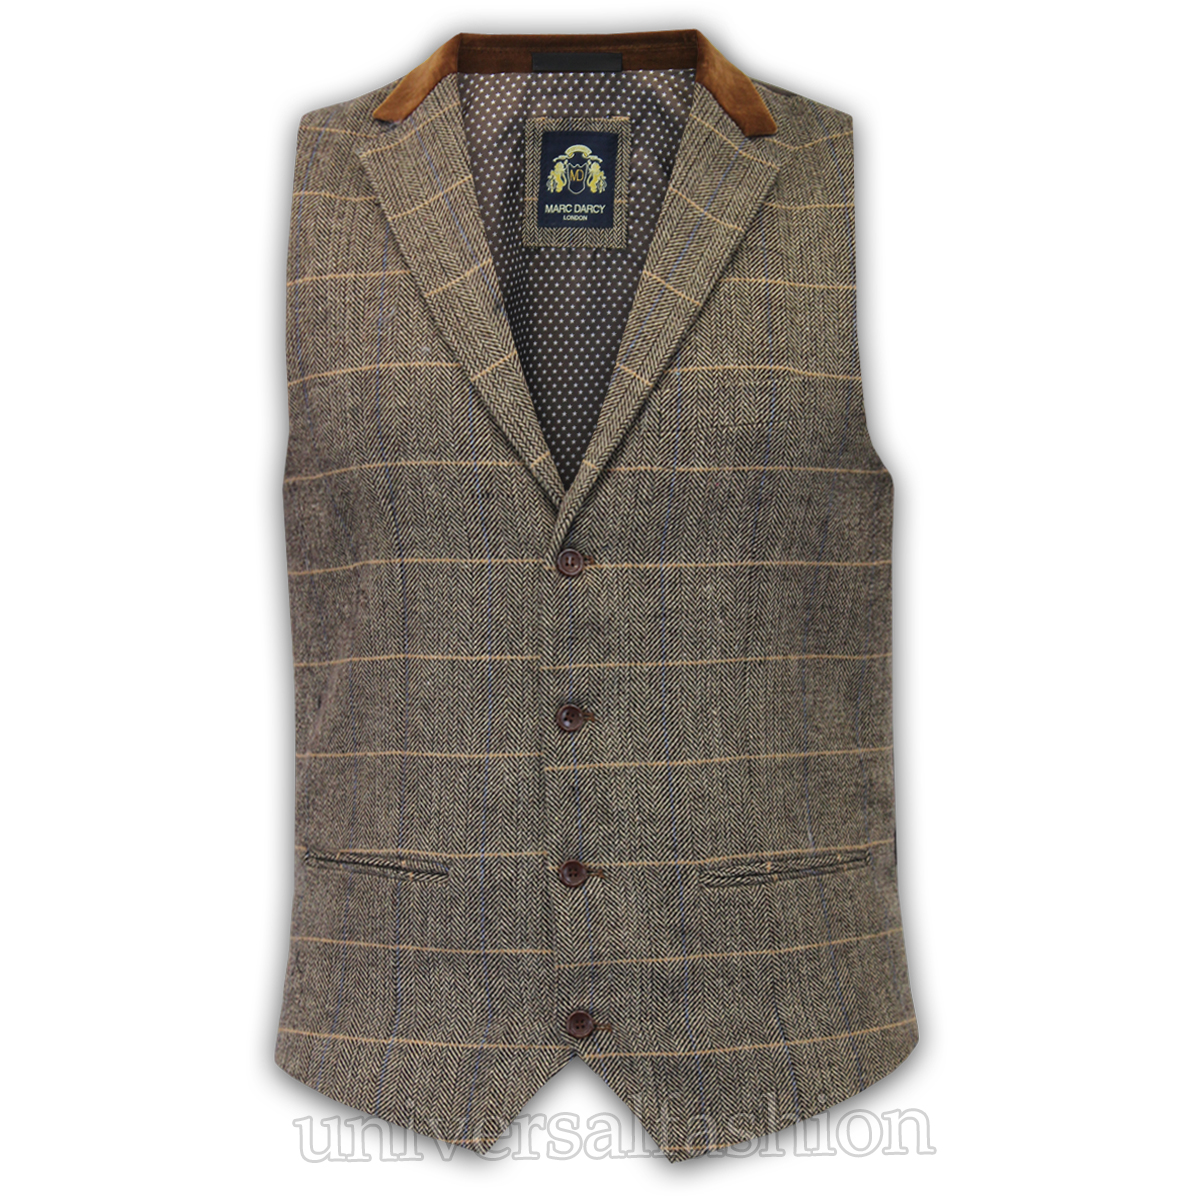 Shop for and buy mens tweed vest online at Macy's. Find mens tweed vest at Macy's.